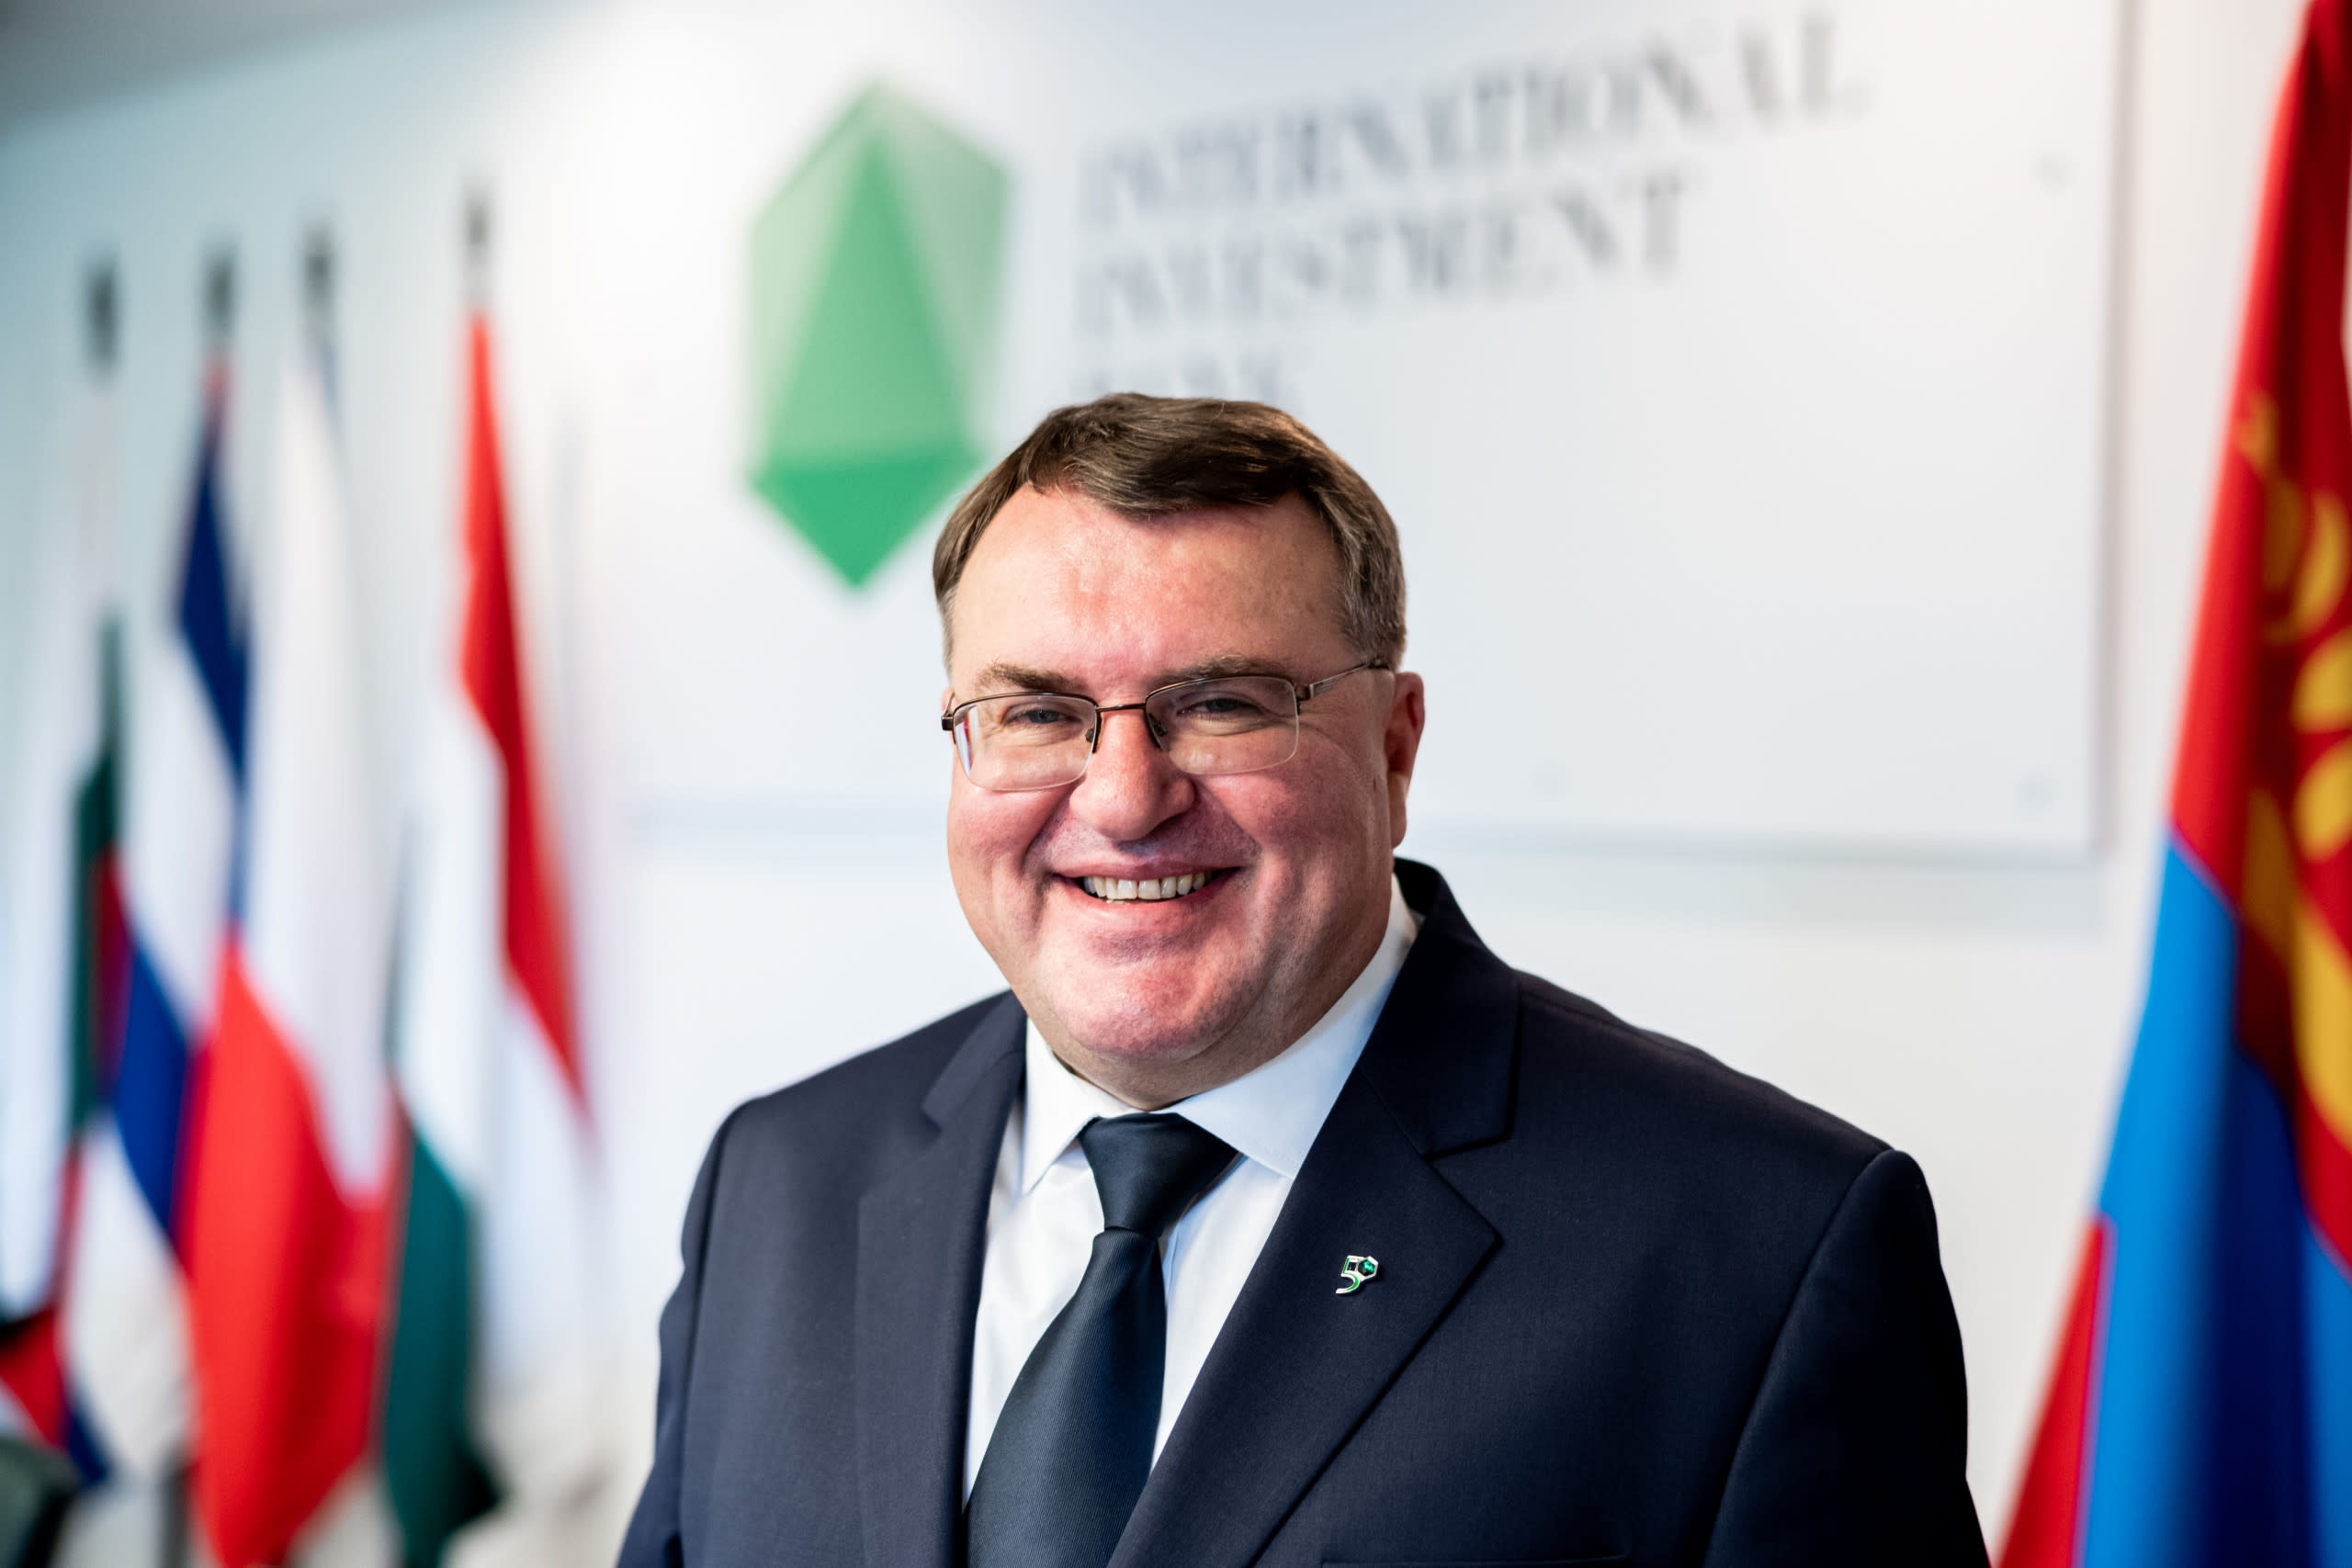 Deputy Chairperson Imre Laszlóczki spoke to  KarcFM: new permanent IIB Headquarters in Budapest, post-COVID economic recovery prospectives and other key issues.